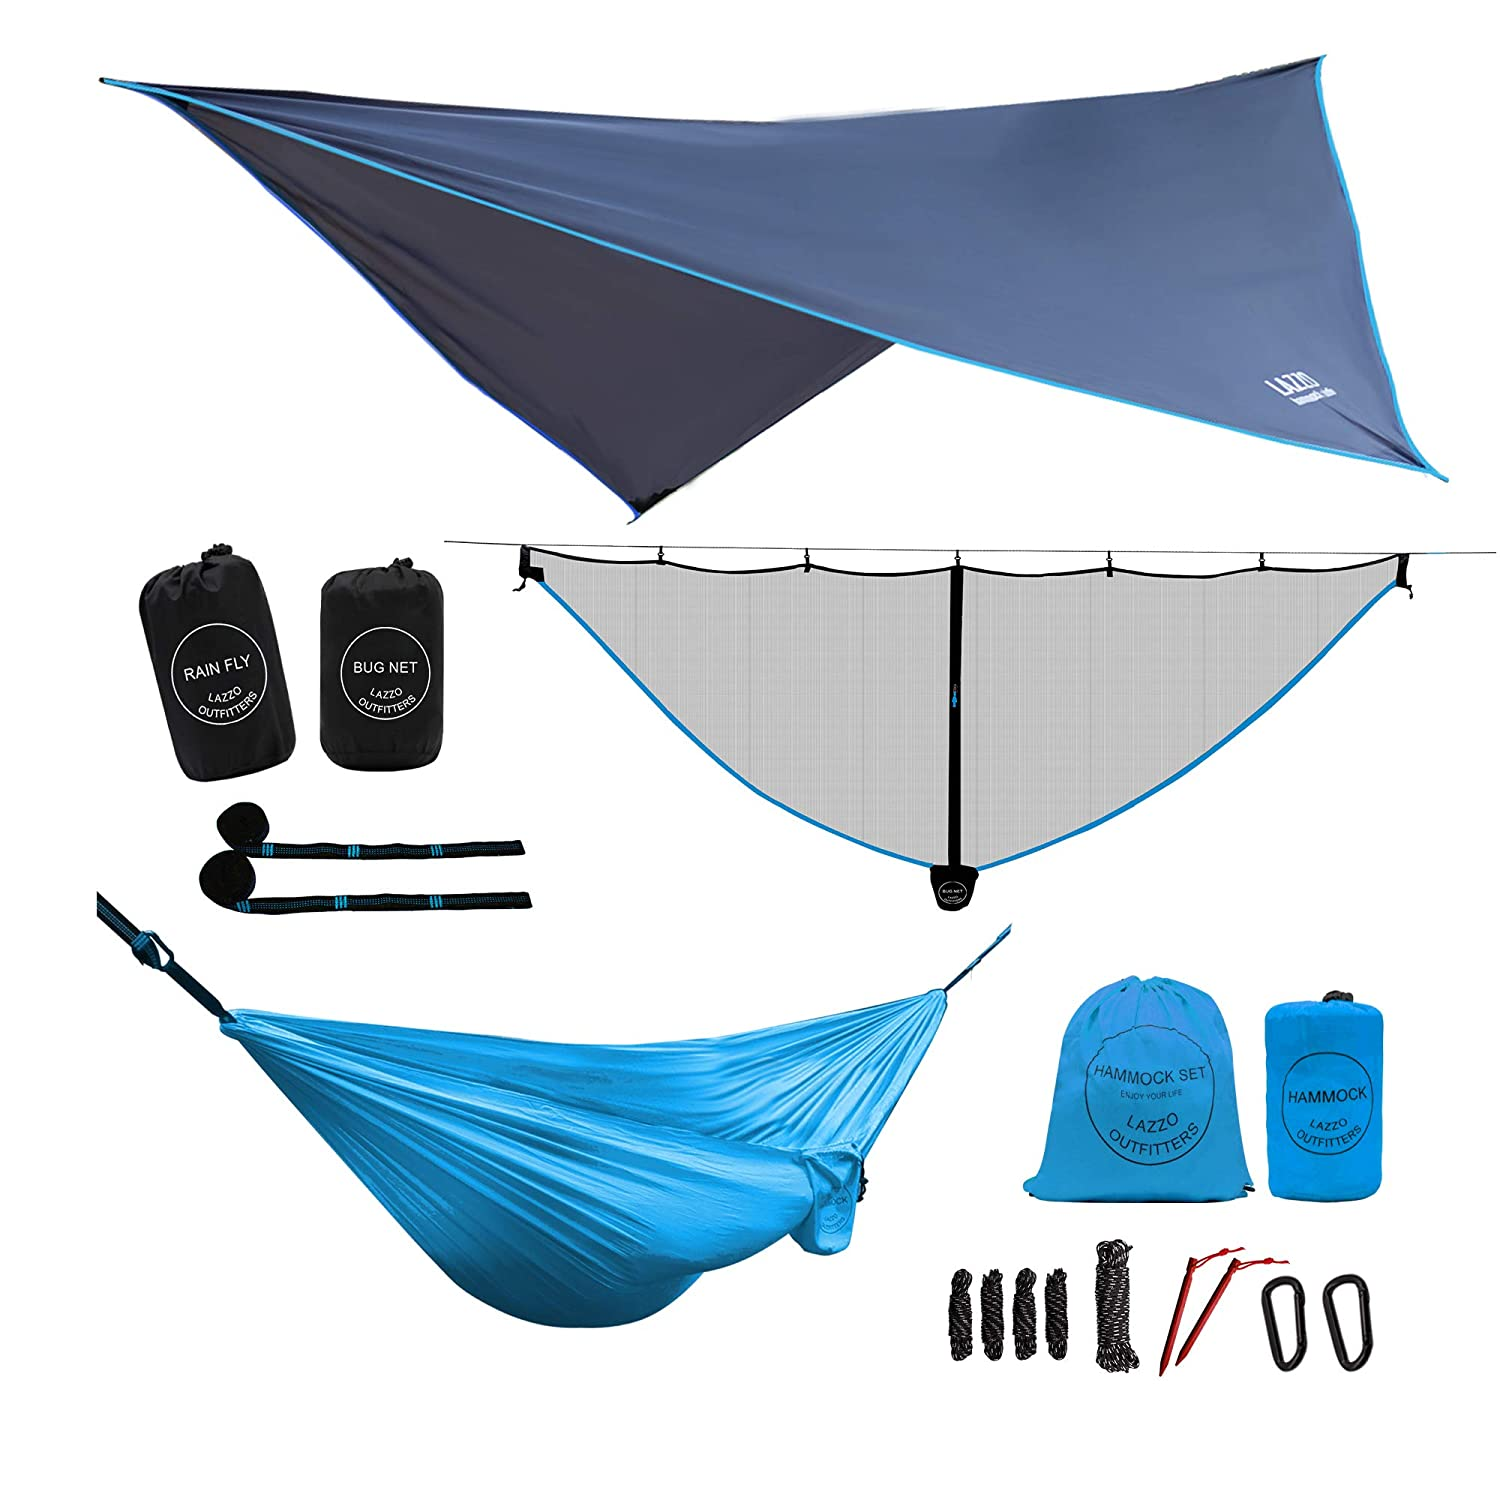 LAZZO Camping Hammock Bundle Includes Mosquito Net, Rain Fly, Tree Straps, Backpack Weighs 4 Pounds, Perfect for Hammock Camping,Backpacking Hiking Lightweight Nylon Single Double Hammock